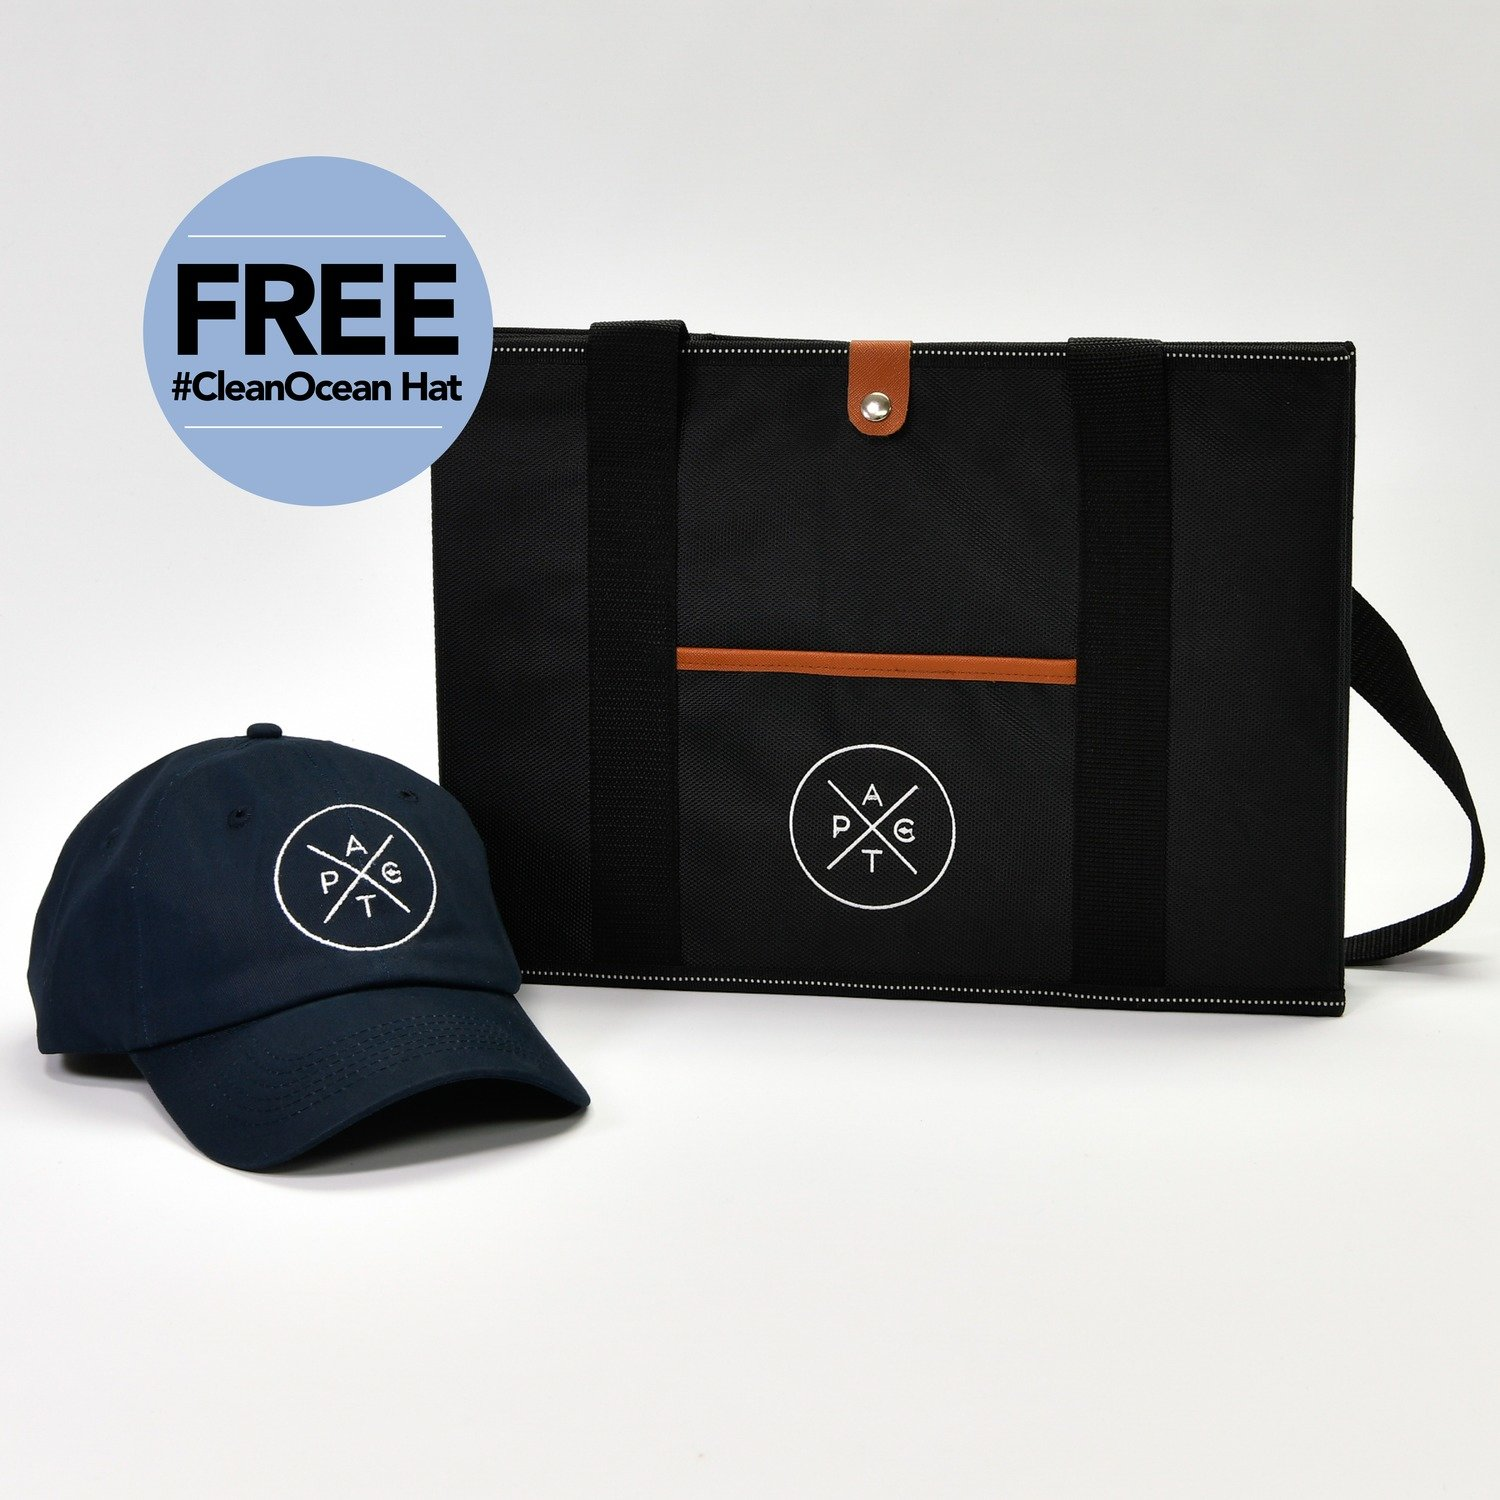 Buy One Pact Box Today and You Also Receive a Pact #CleanOcean Hat (a $15.95 value) Absolutely FREE.